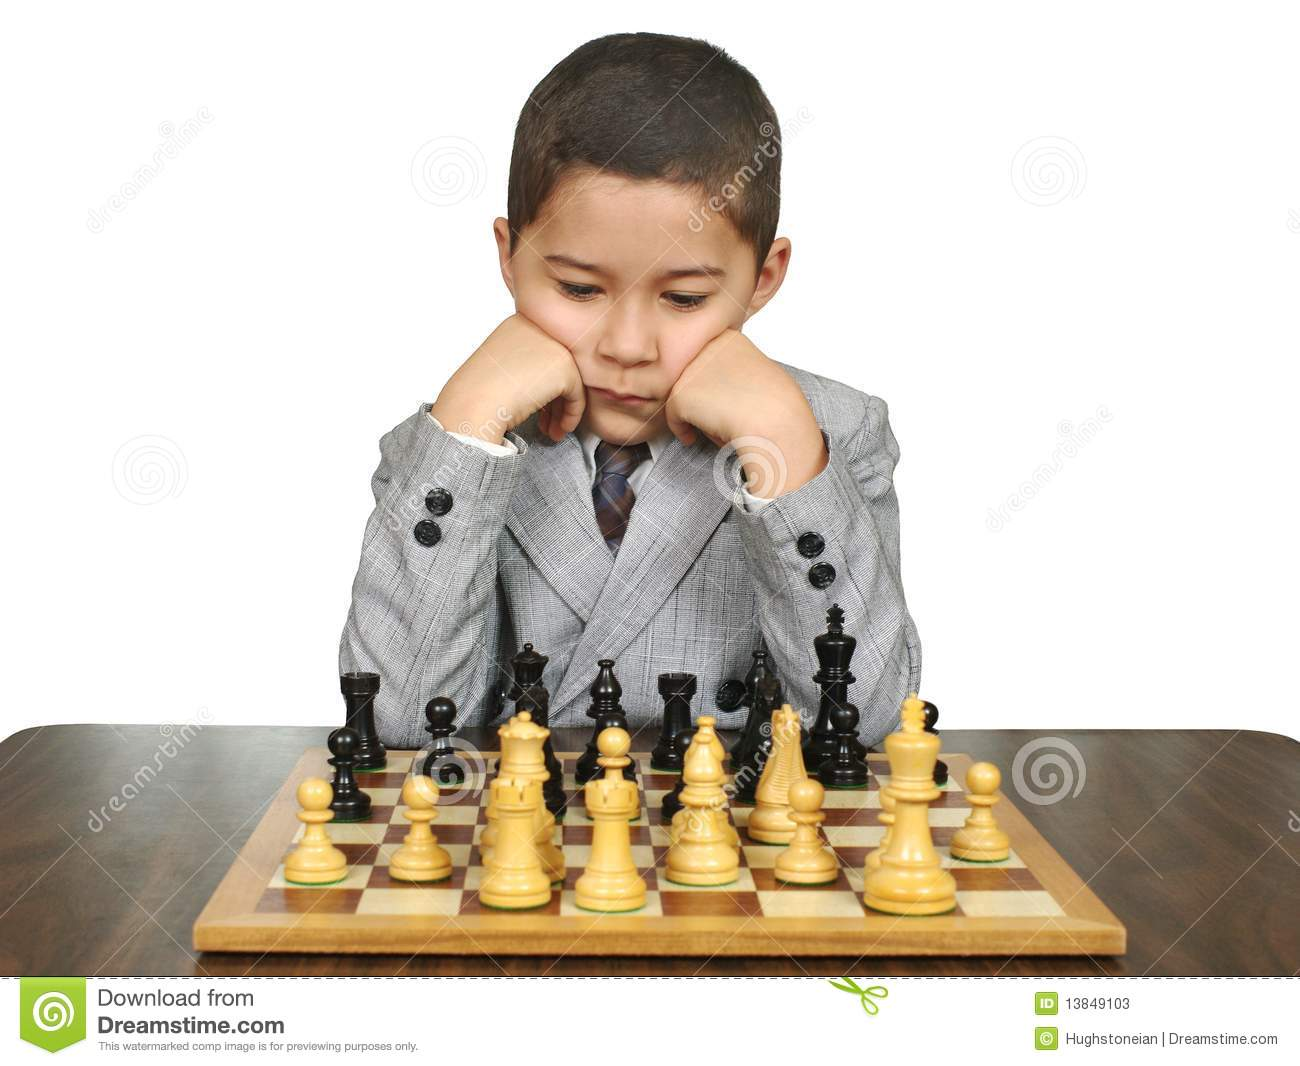 Eight-year old boy playing chess, isolated on white background.